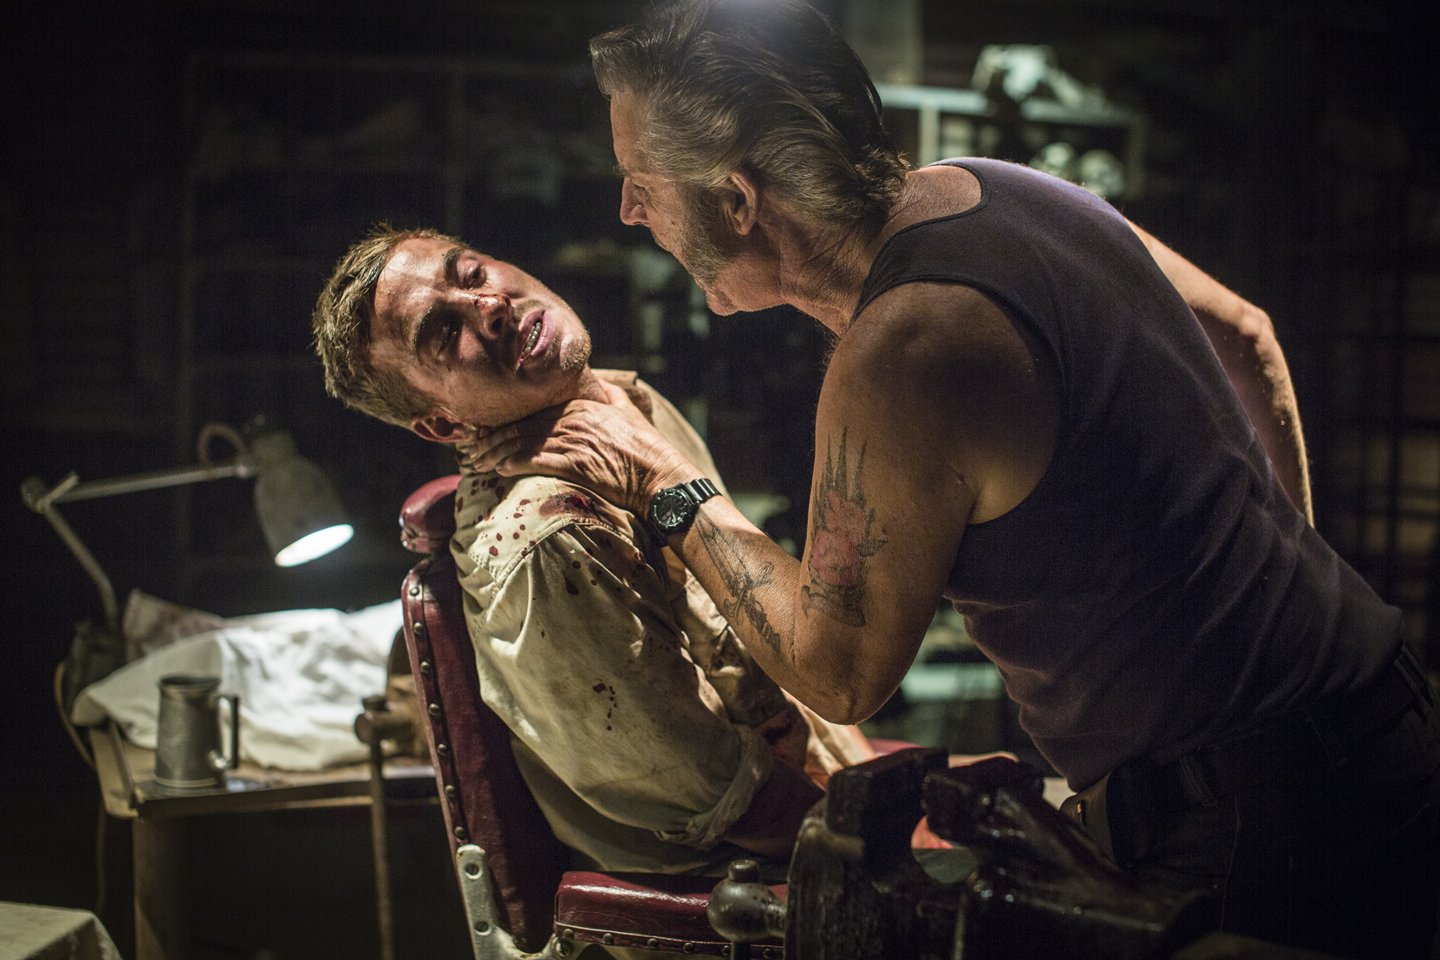 John Jarratt tortures Ryan Corr in Wolf Creek 2 (2013)